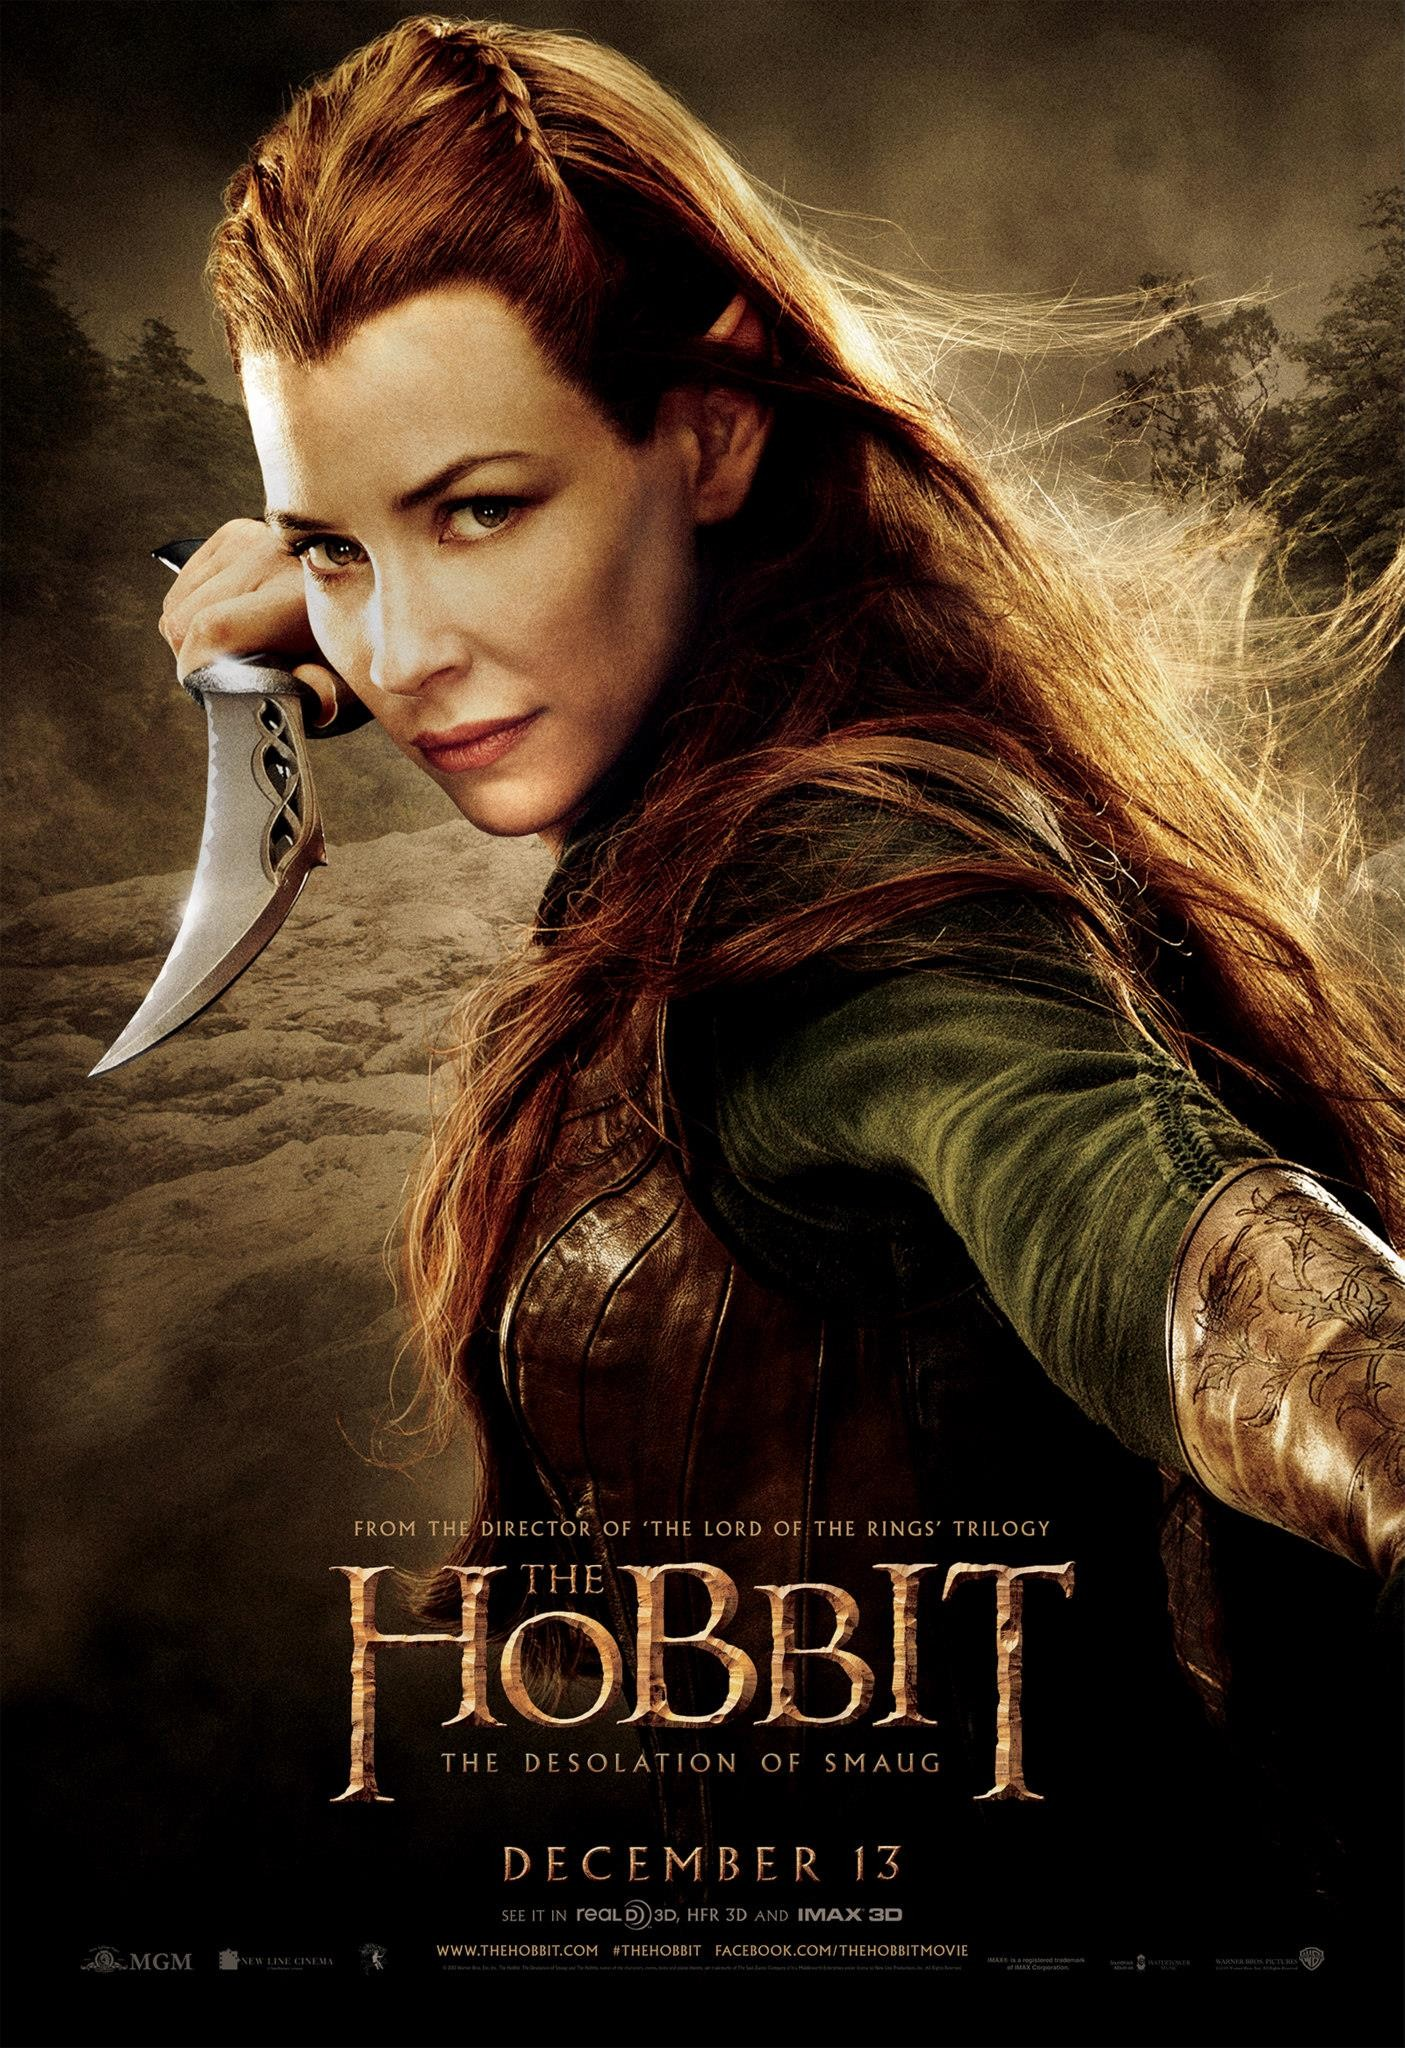 The Hobbit The Desolation of Smaug-Official Poster Banner PROMO POSTER XXLG-04NOVEMBRO2013-06